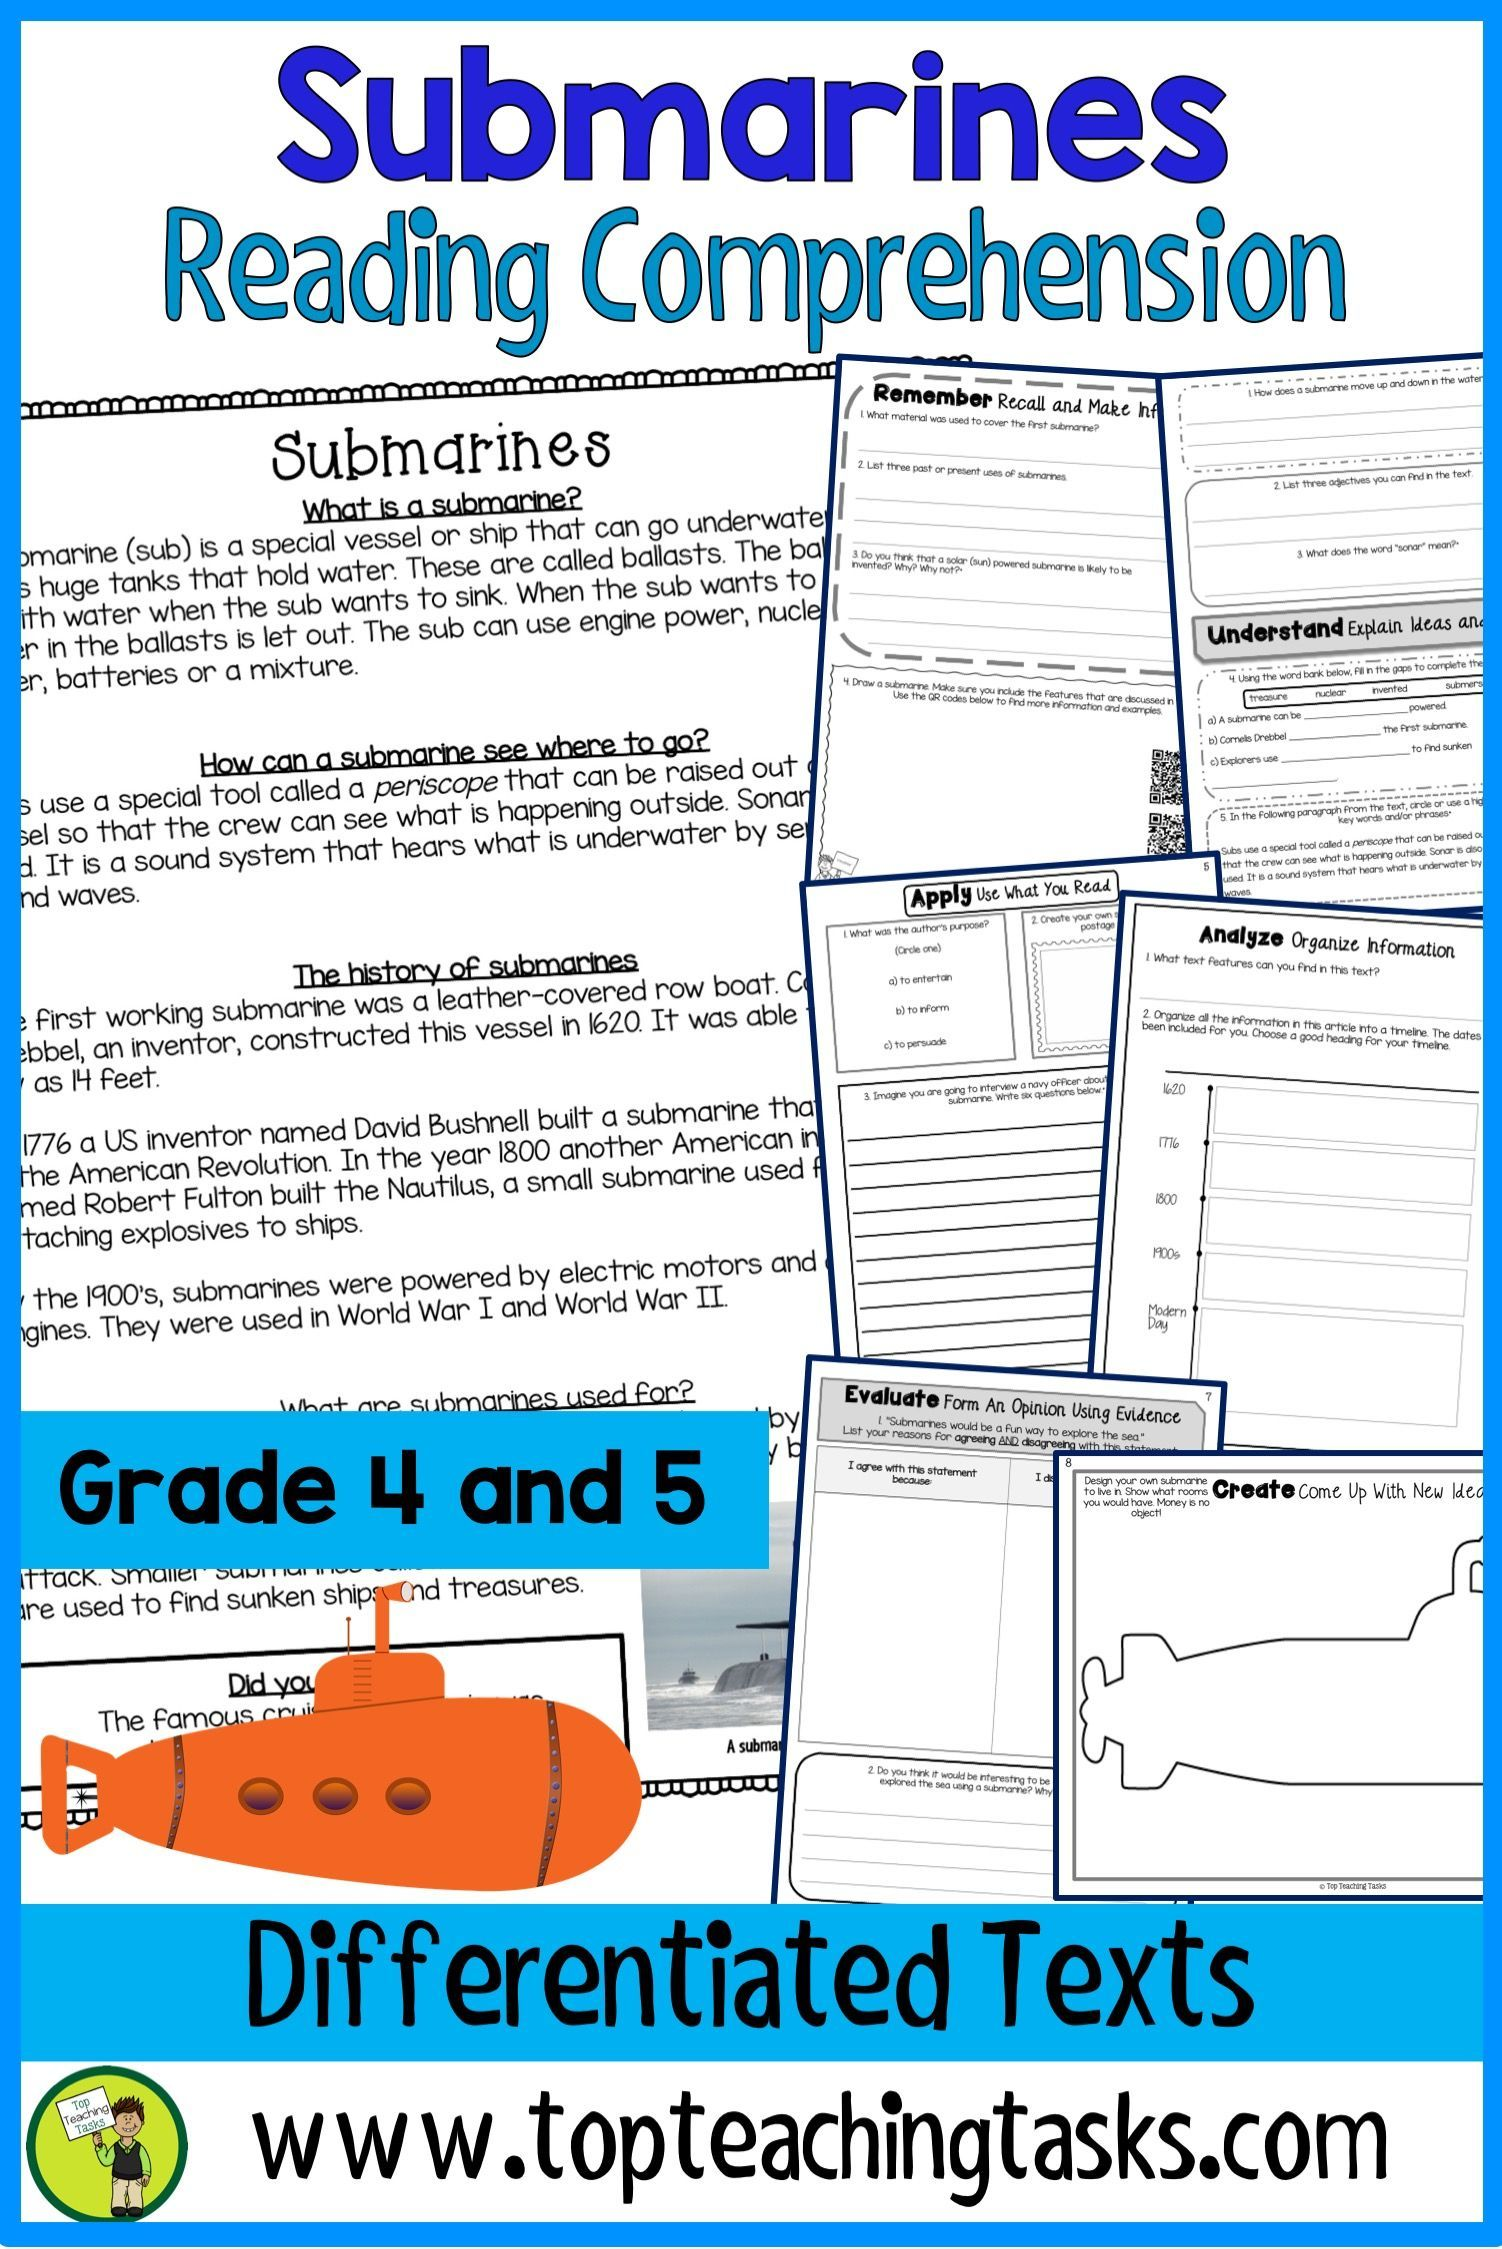 Submarines Reading Comprehension Passages And Questions